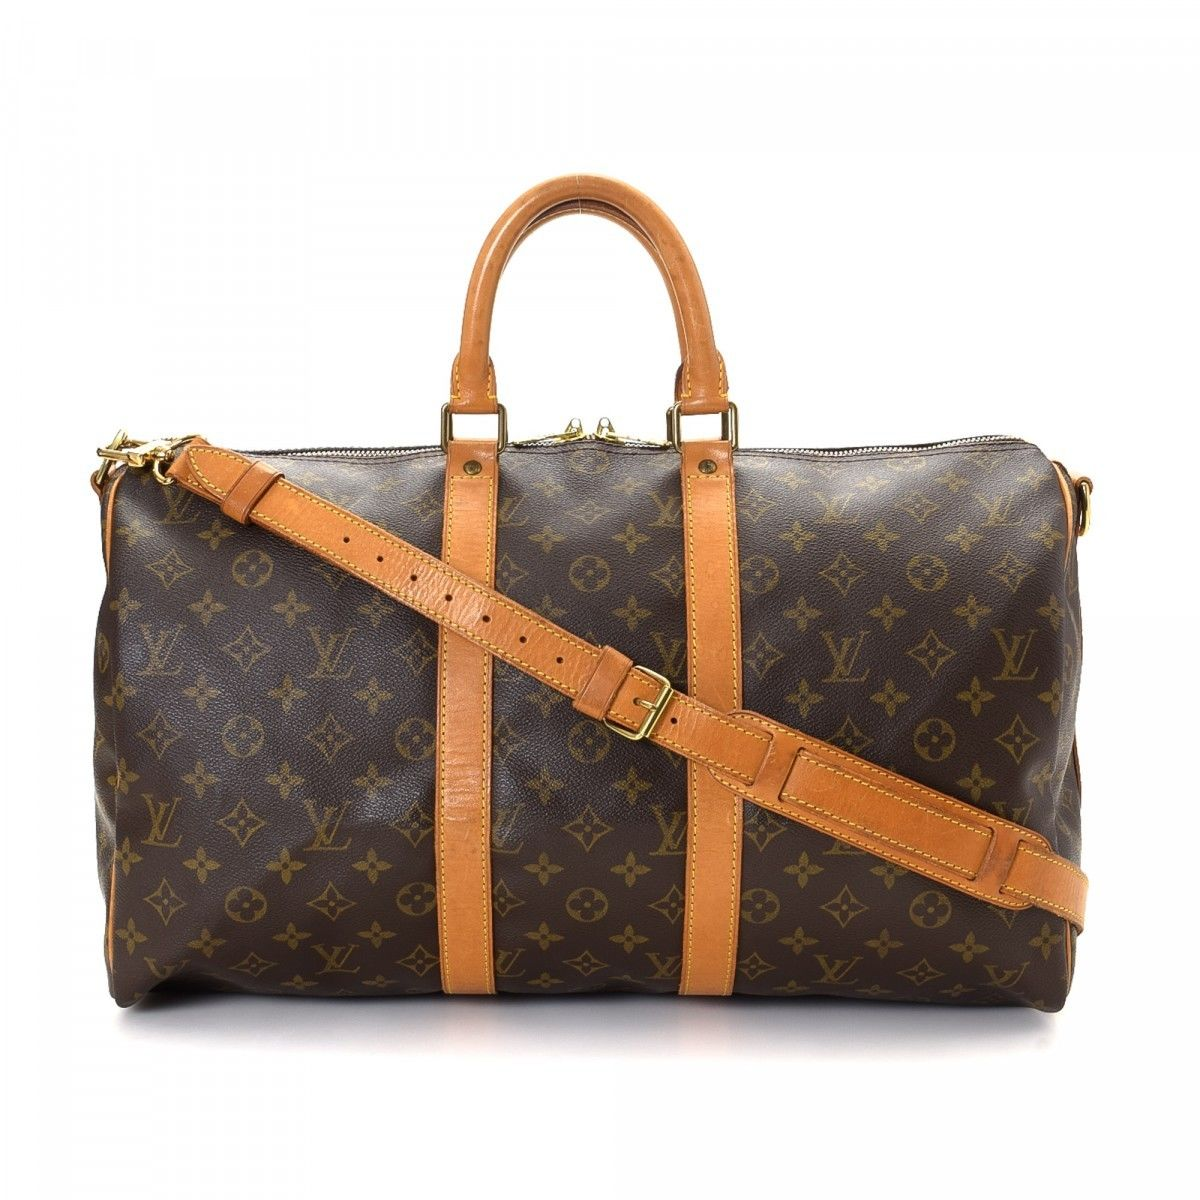 louis vuitton 45 keepall. louis vuitton keepall 45 bandouliere monogram coated canvas - lxrandco pre-owned luxury vintage